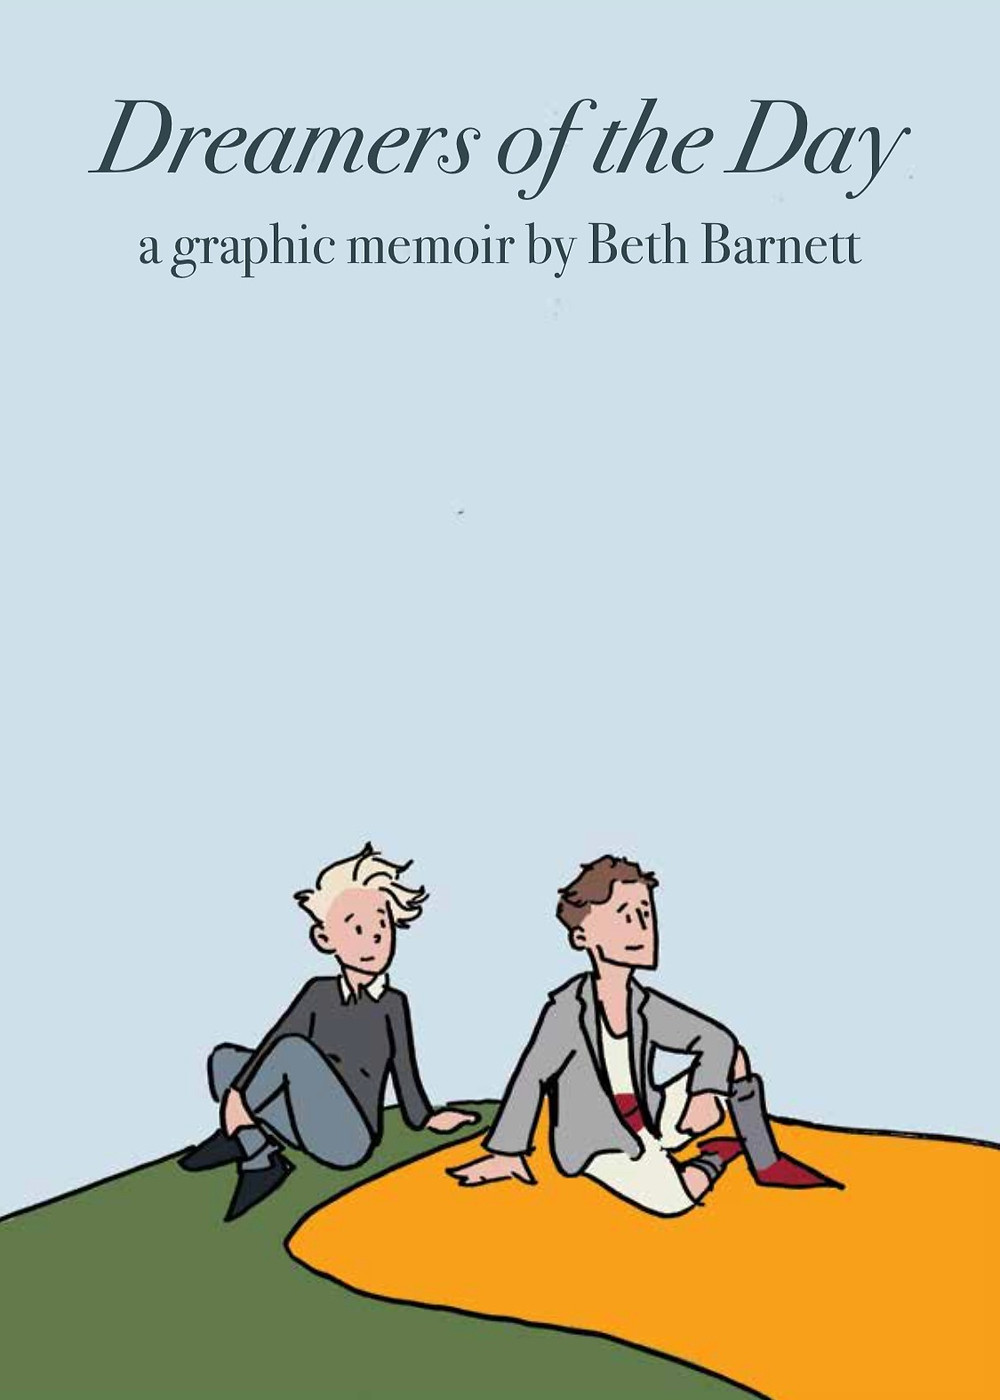 Dreamers of the Day, cover, self-published, Barnett